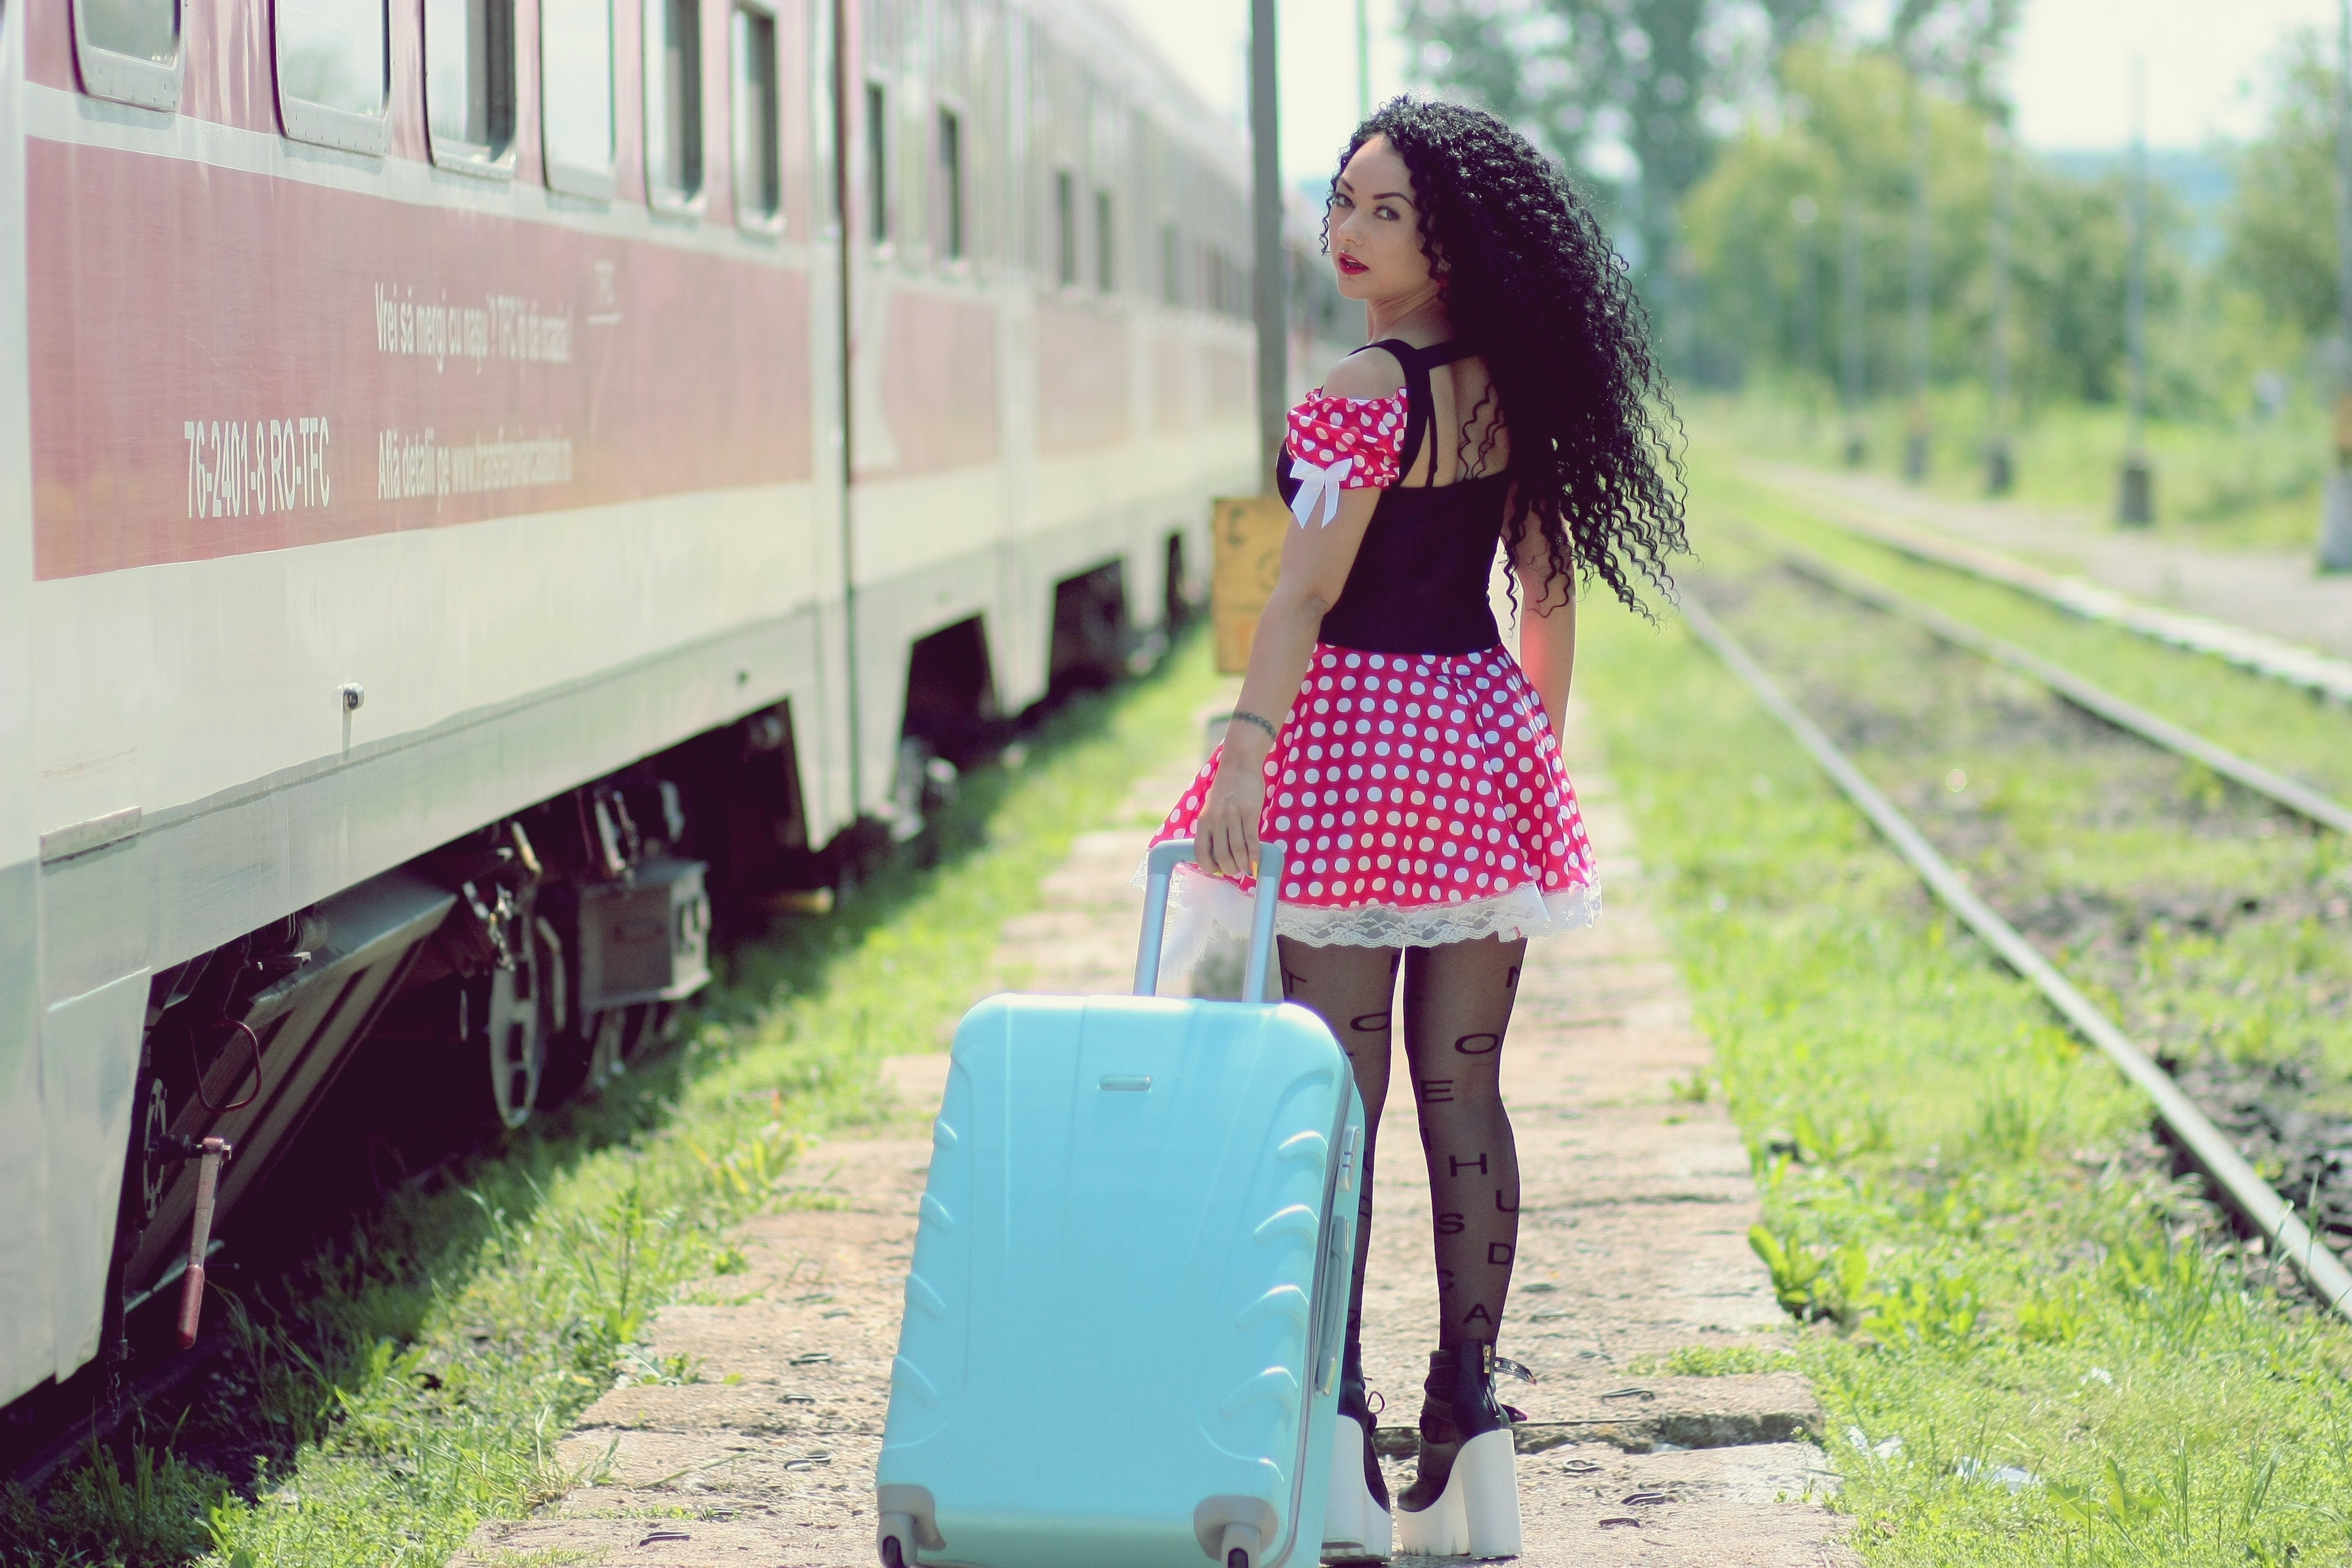 Young woman with luggage standing on train in city photo